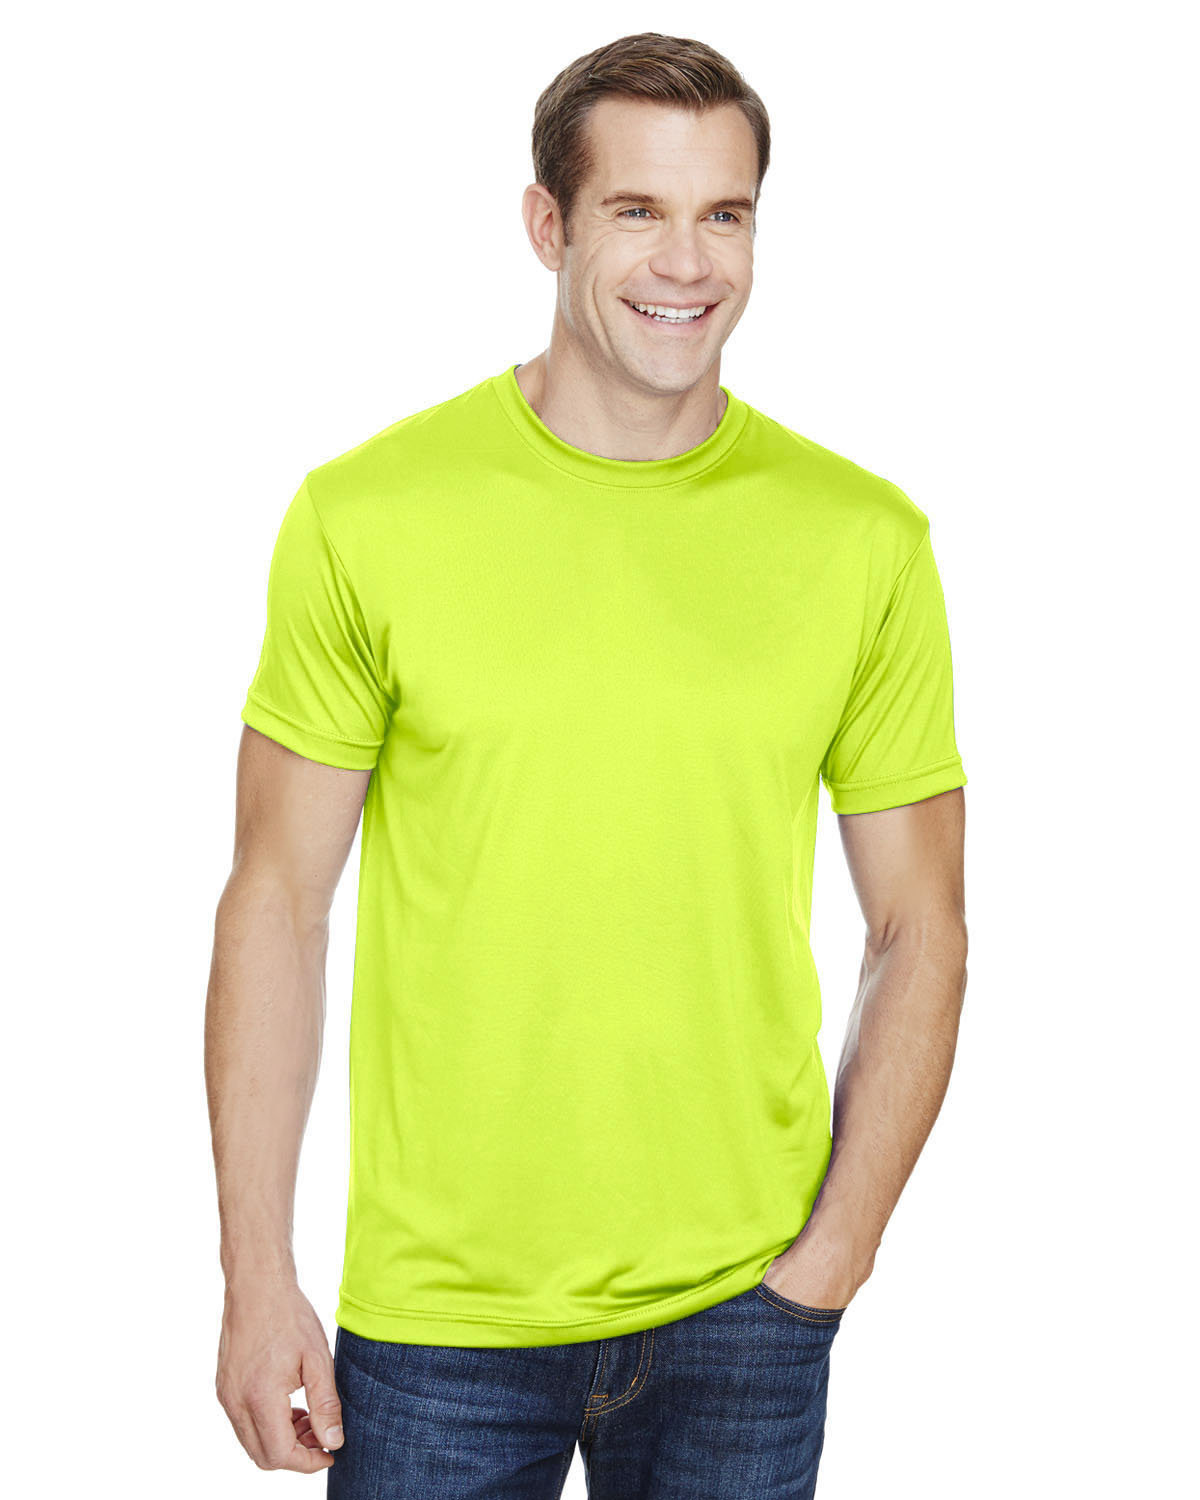 Bayside Unisex 4.5 oz., Polyester Performance T-Shirt LIME GREEN